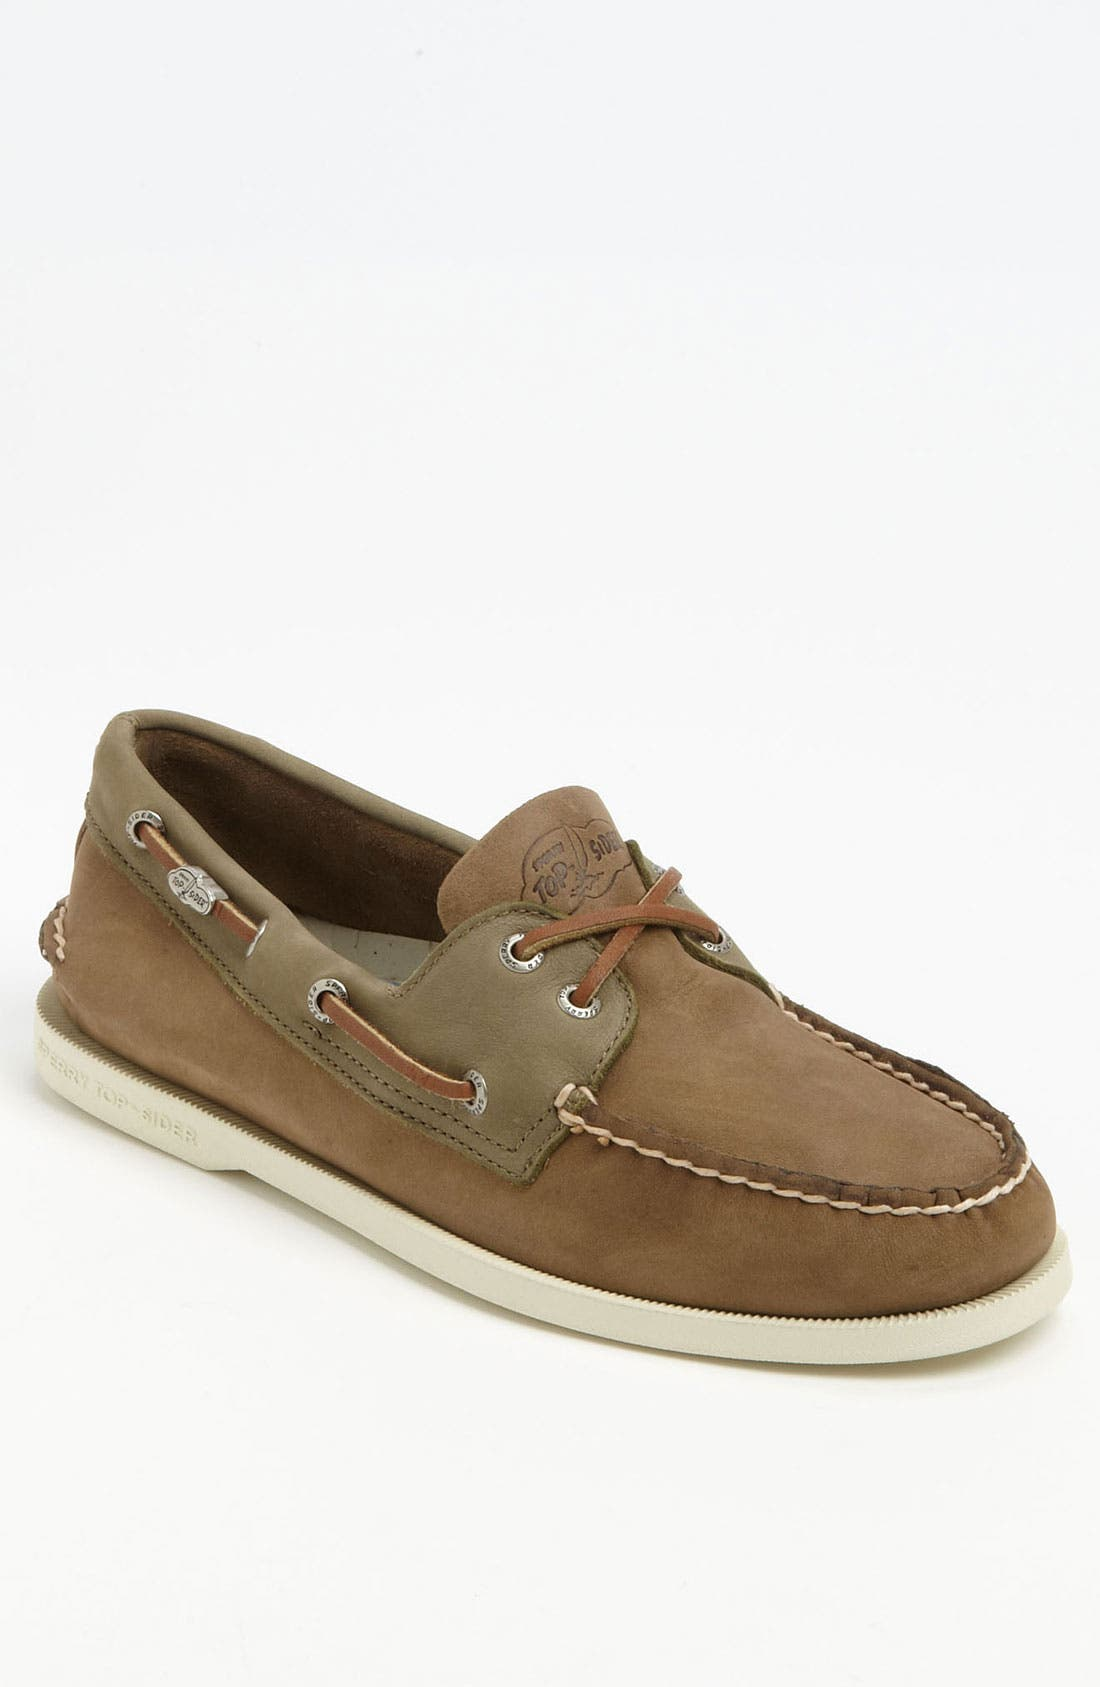 Alternate Image 1 Selected - Sperry Top-Sider® 'Authentic Original' Boat Shoe (Men) (Online Exclusive)